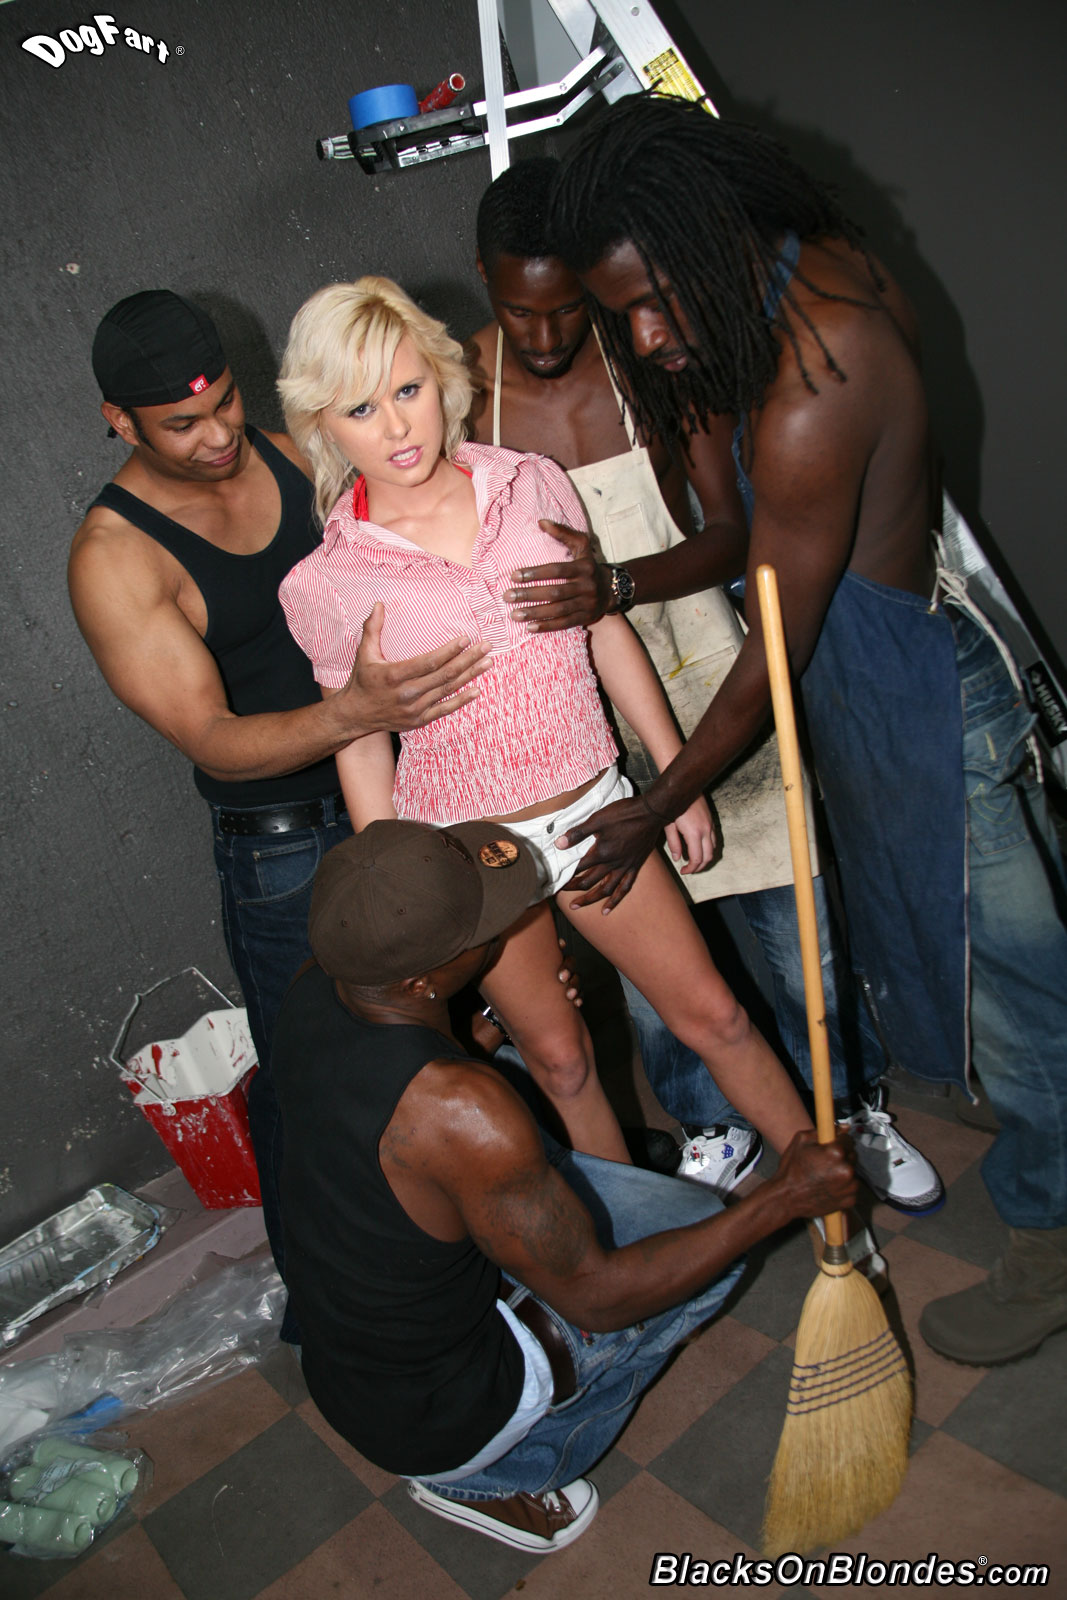 Blacks On Blondes - Kelly Surfer